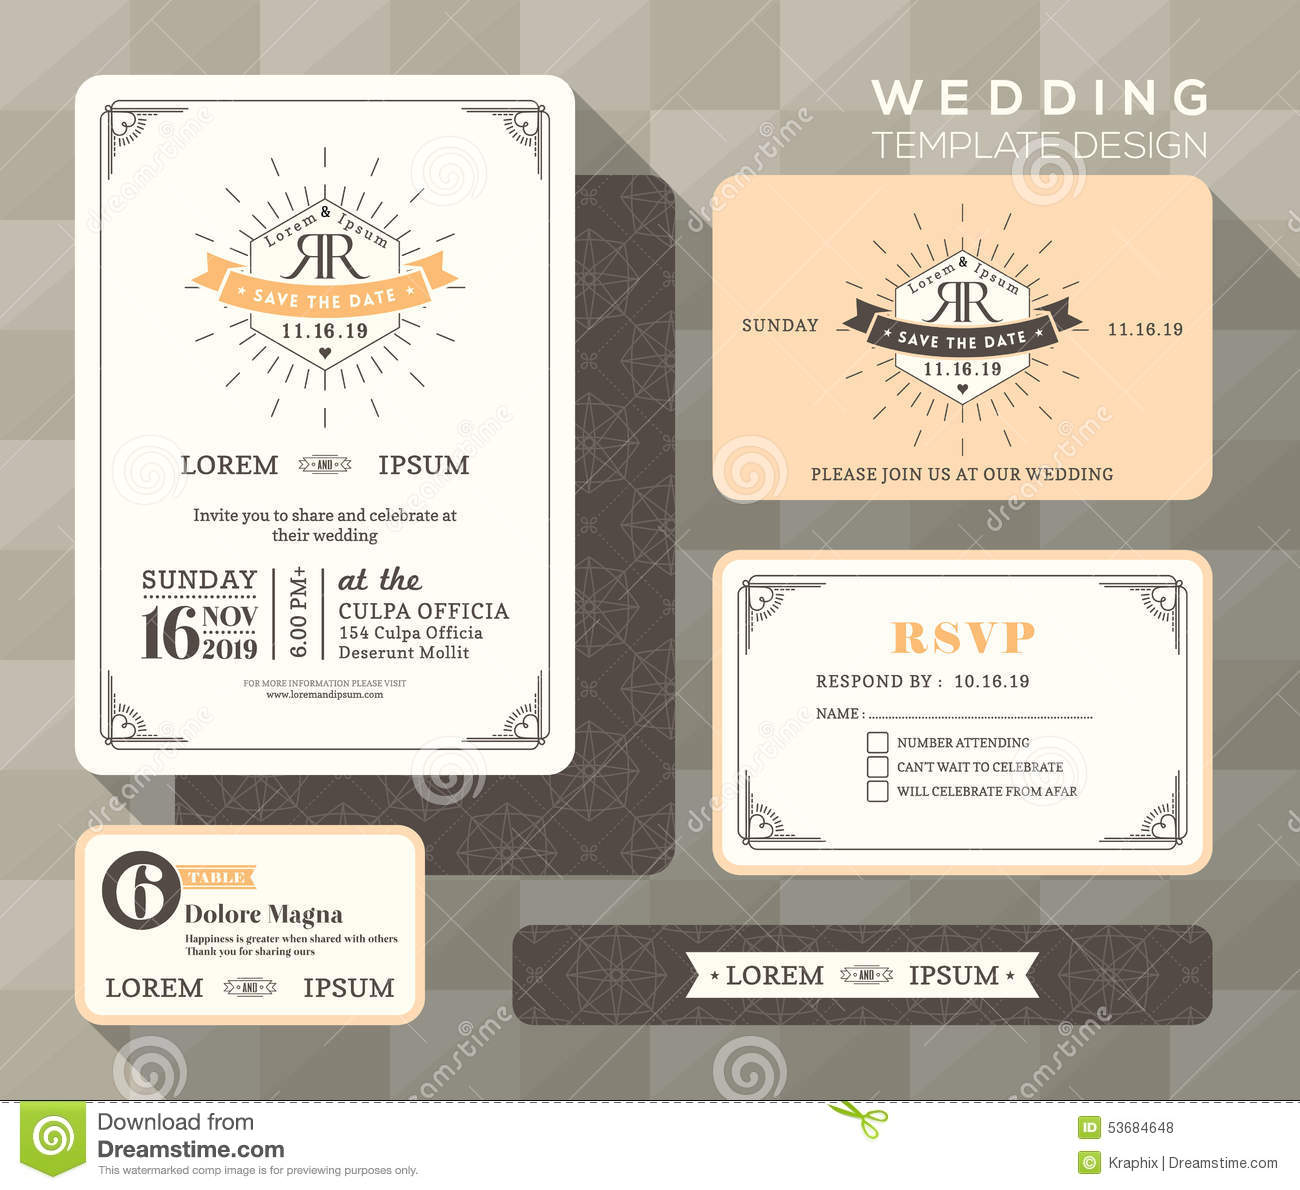 Save The Date Invitation Templates is perfect invitation example